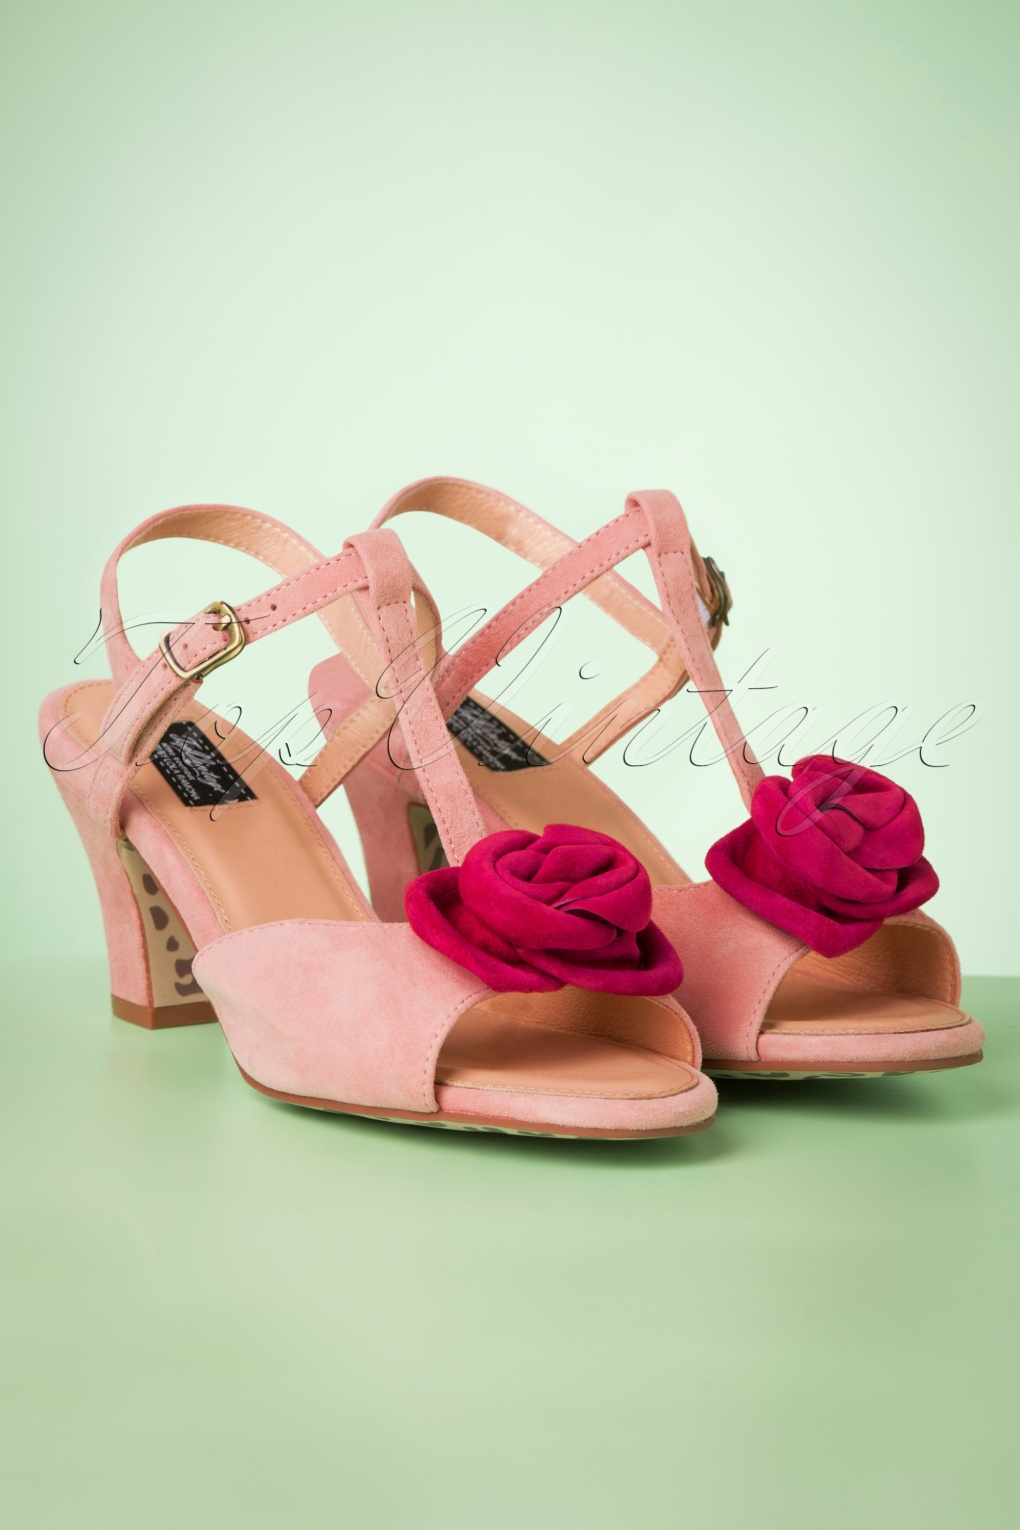 Rockabilly Shoes- Heels, Pumps, Boots, Flats 50s Ava Bloom Baby Bloom Sandals in Dusty Pink �104.02 AT vintagedancer.com